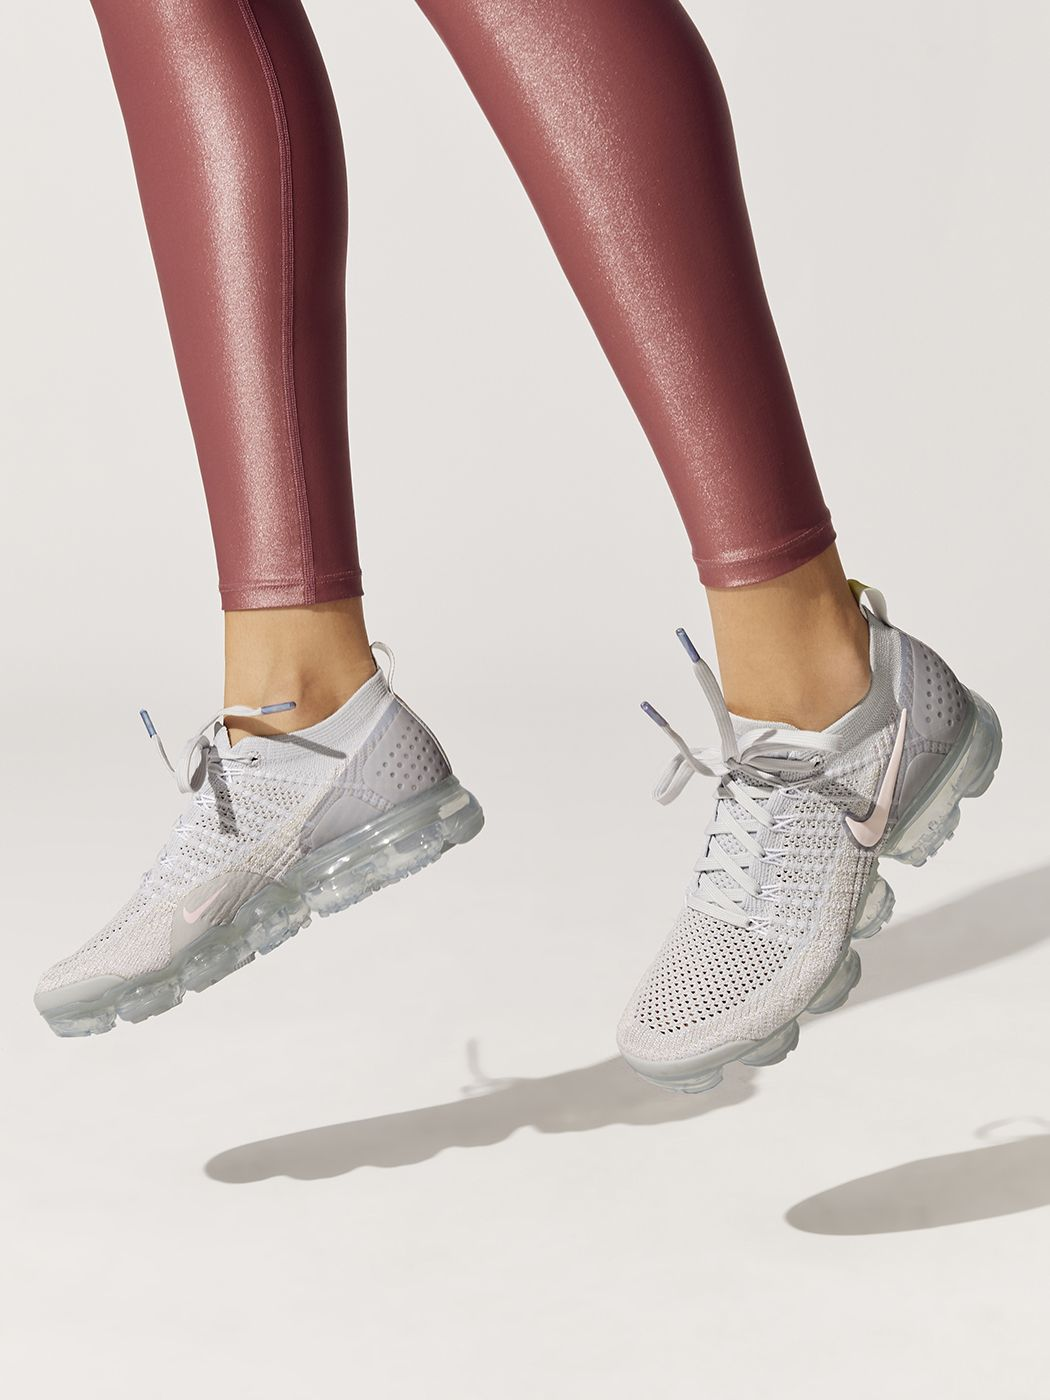 promo code 2bef3 6dd10 W Nike Air Vapormax Flyknit 2 in Pure Platinum/arctic Pink ...